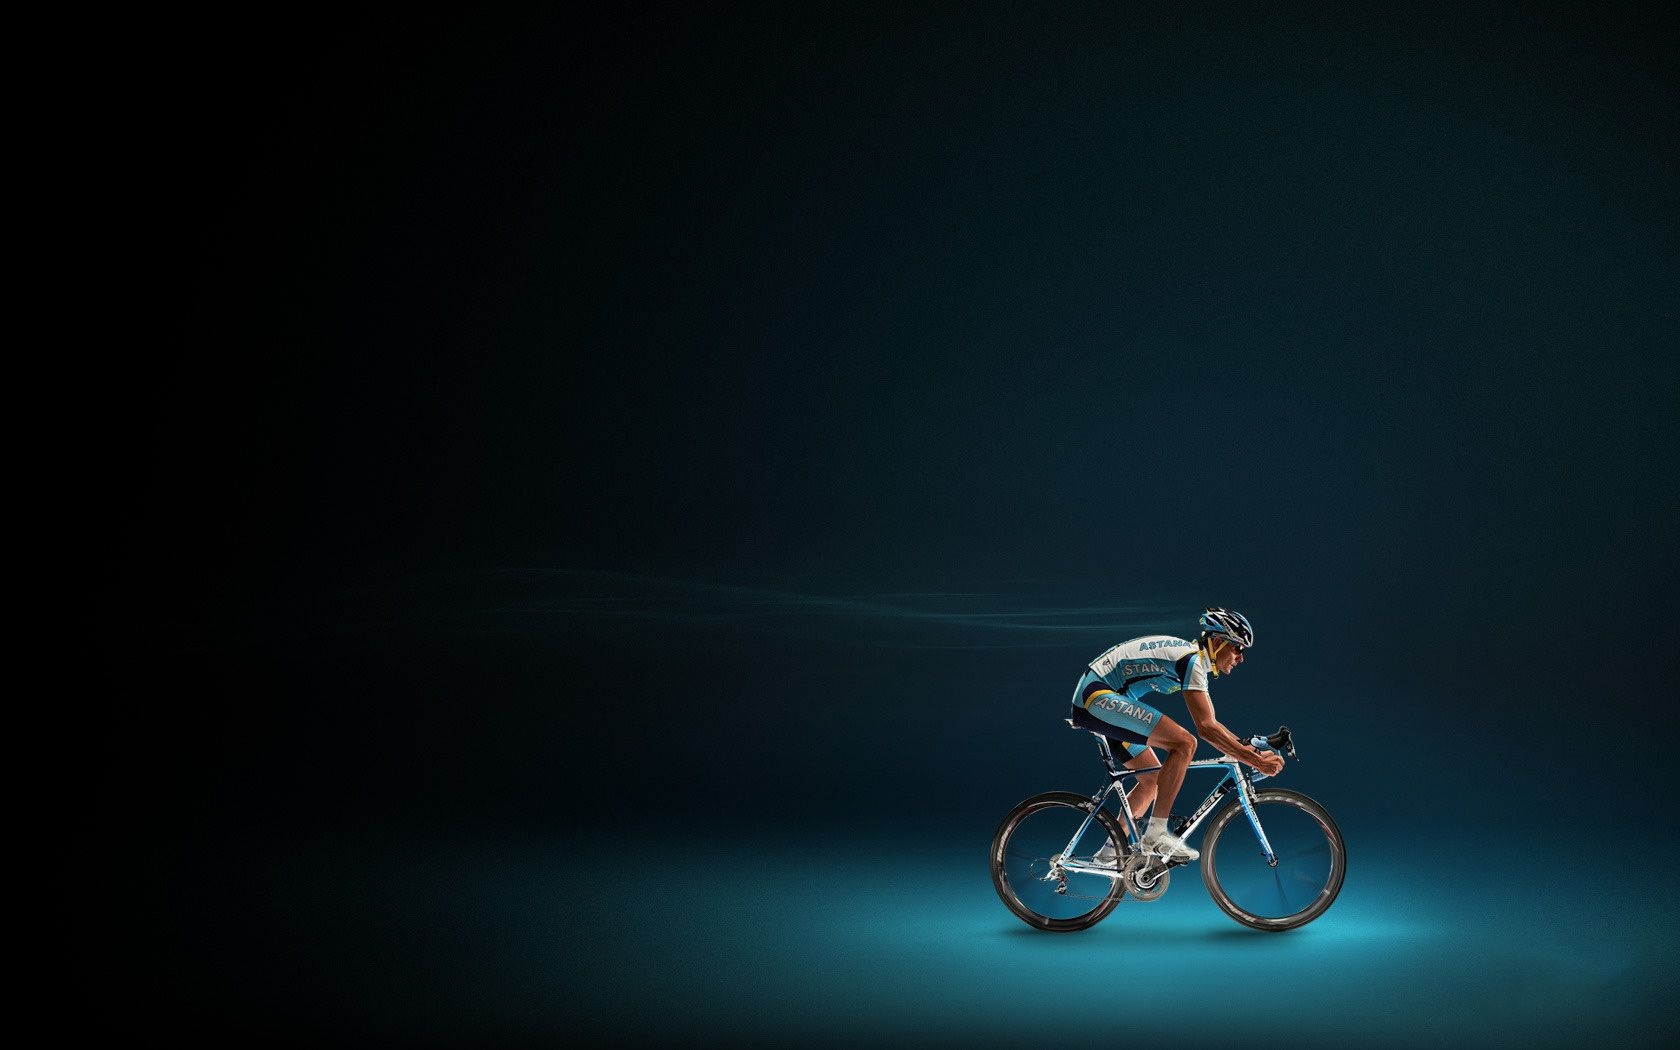 22 Hd Sports Wallpapers Backgrounds Images: CYCLING F Wallpaper